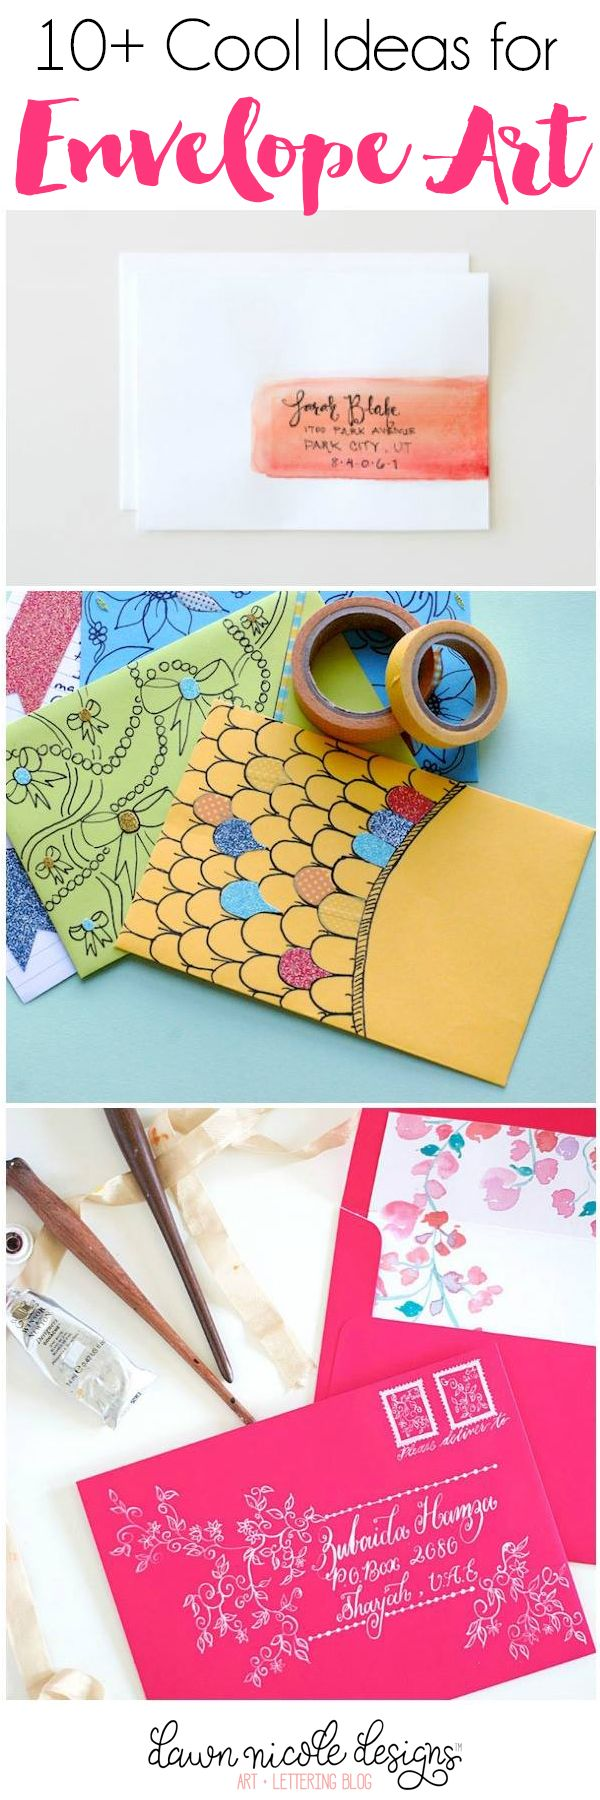 Best Mail Art Images On   Envelope Art Mail Art And